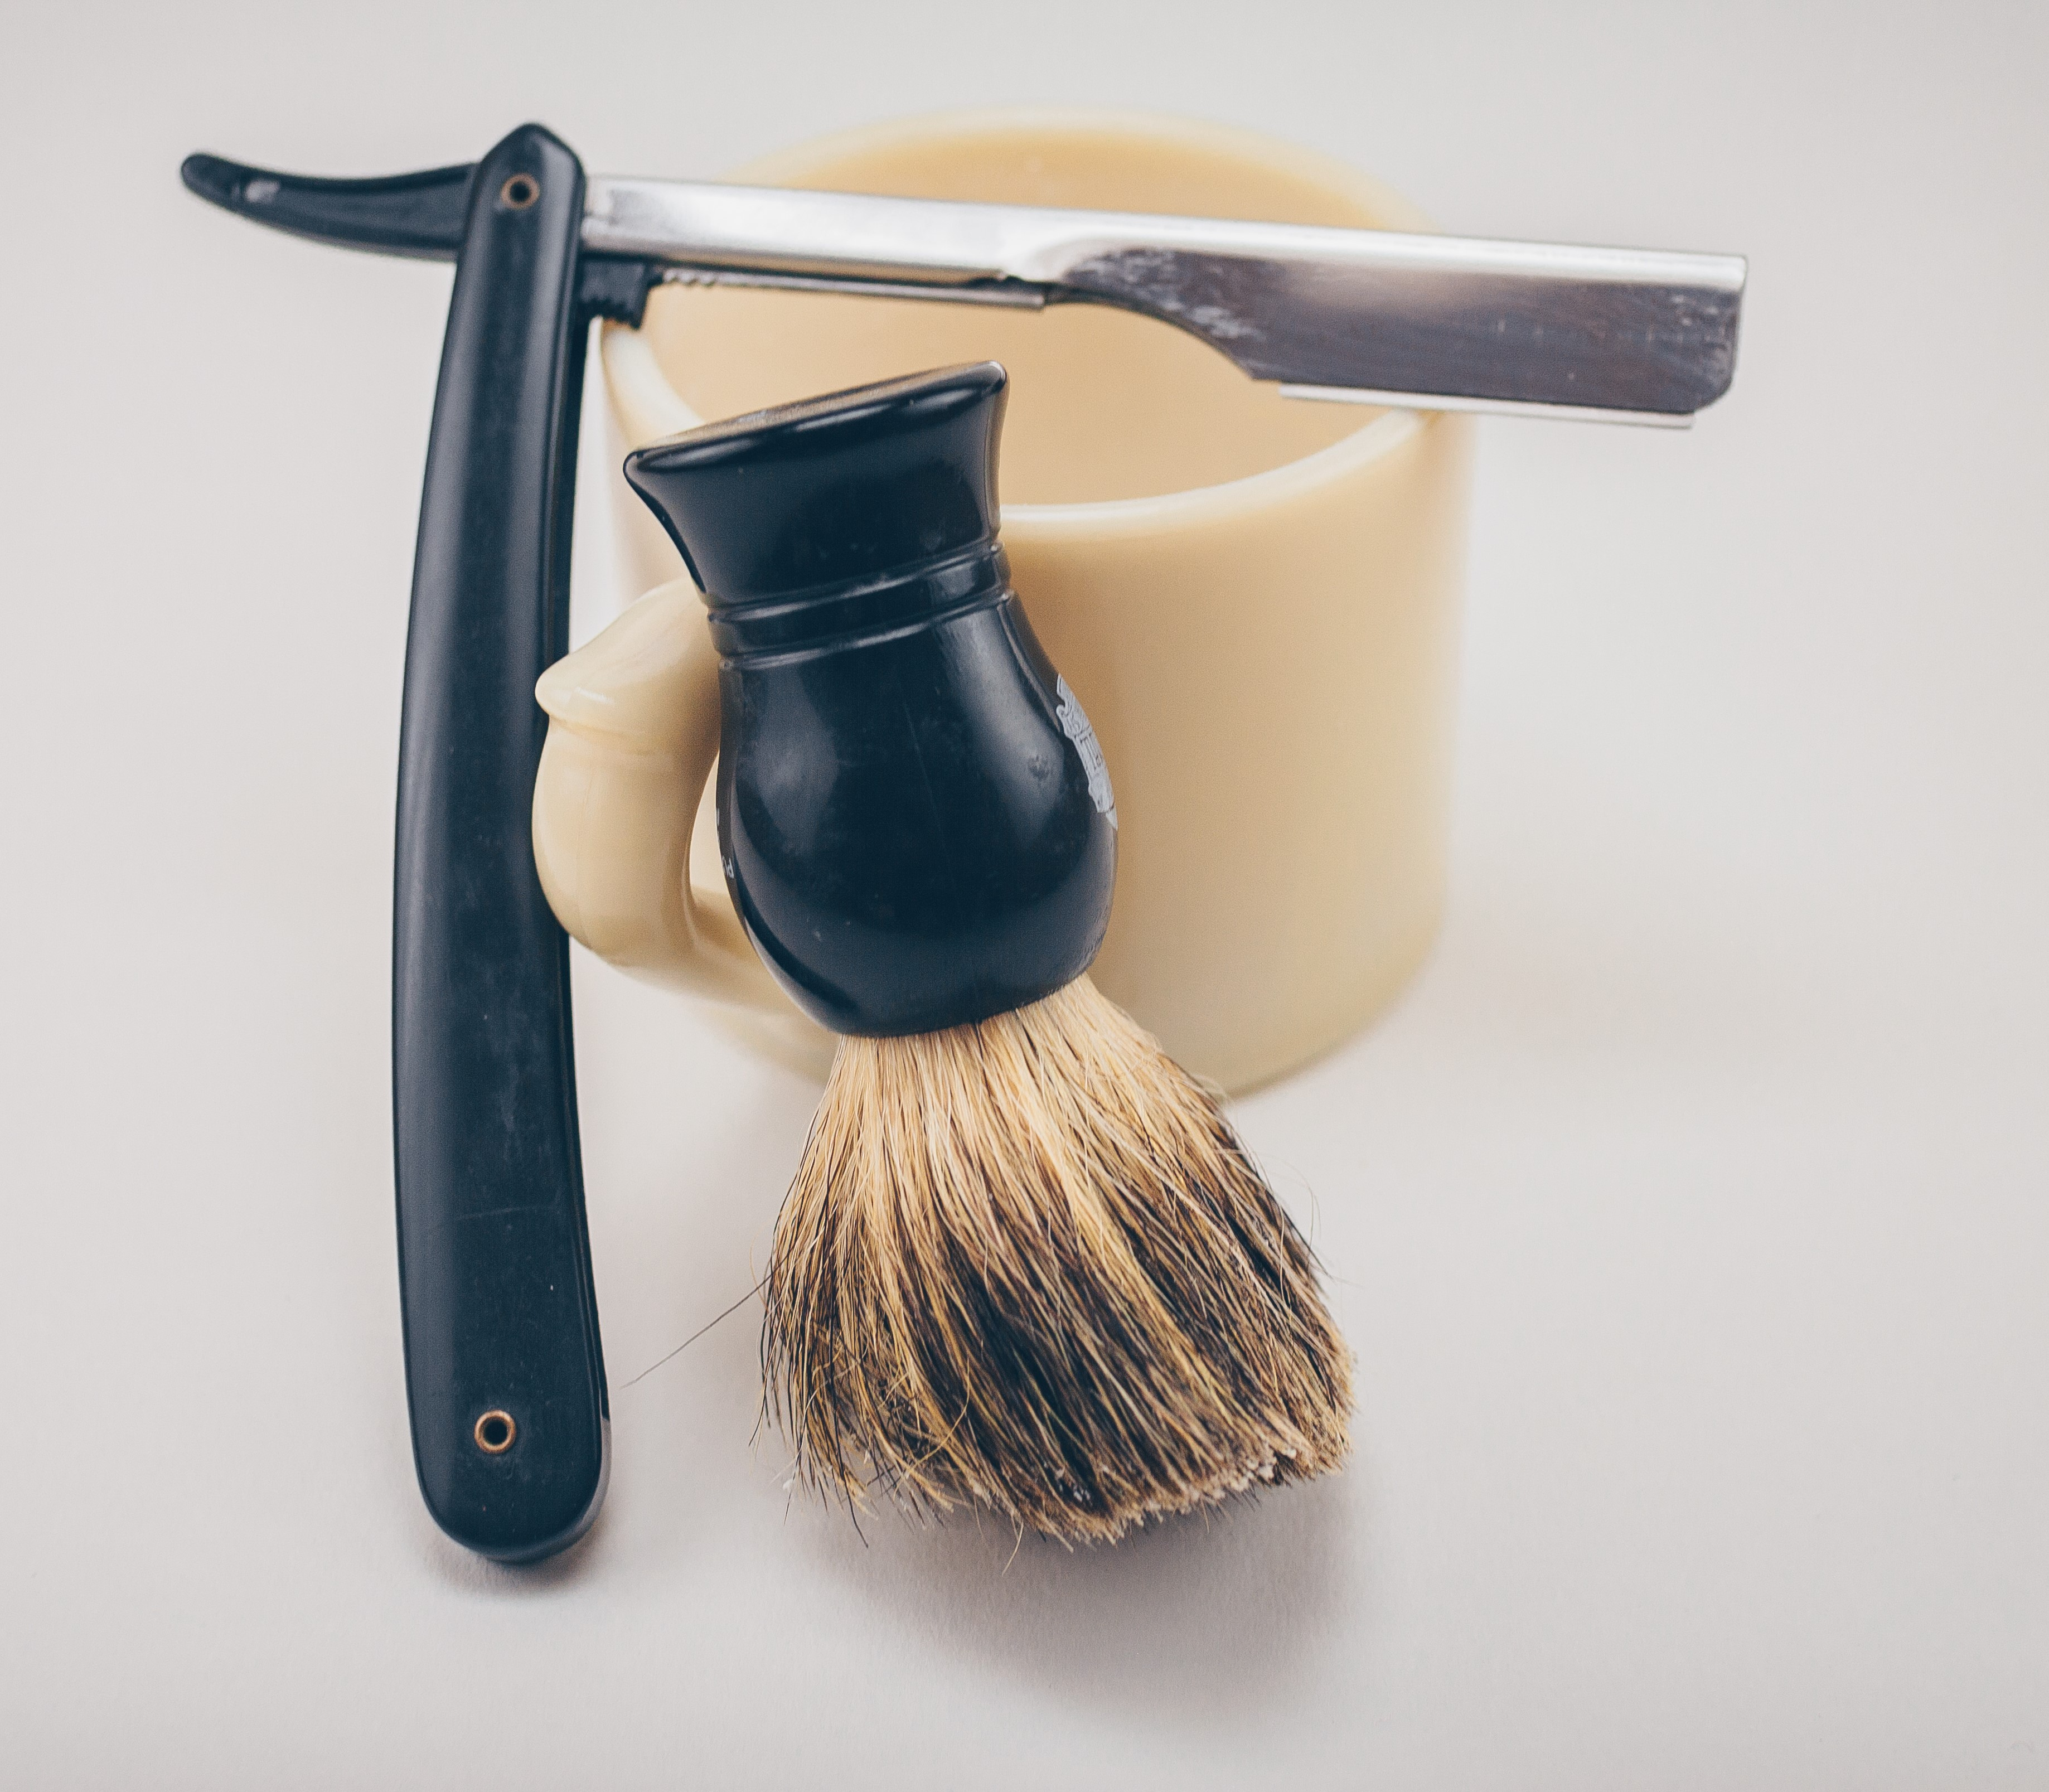 Save Water while Shaving- Save Water in हिन्दी